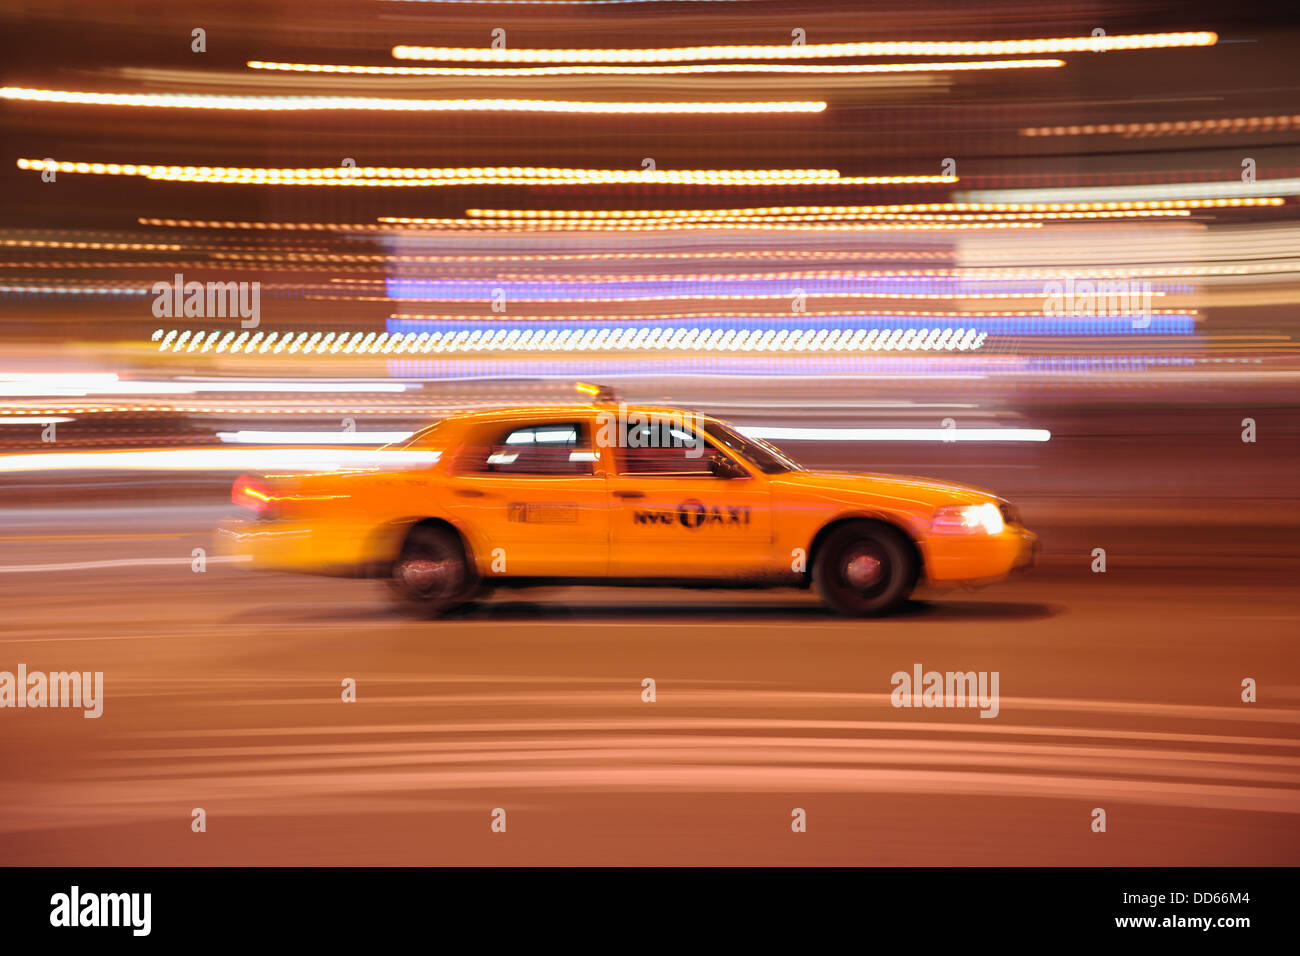 USA, New York State, New York City, Blurred motion of yellow cab - Stock Image